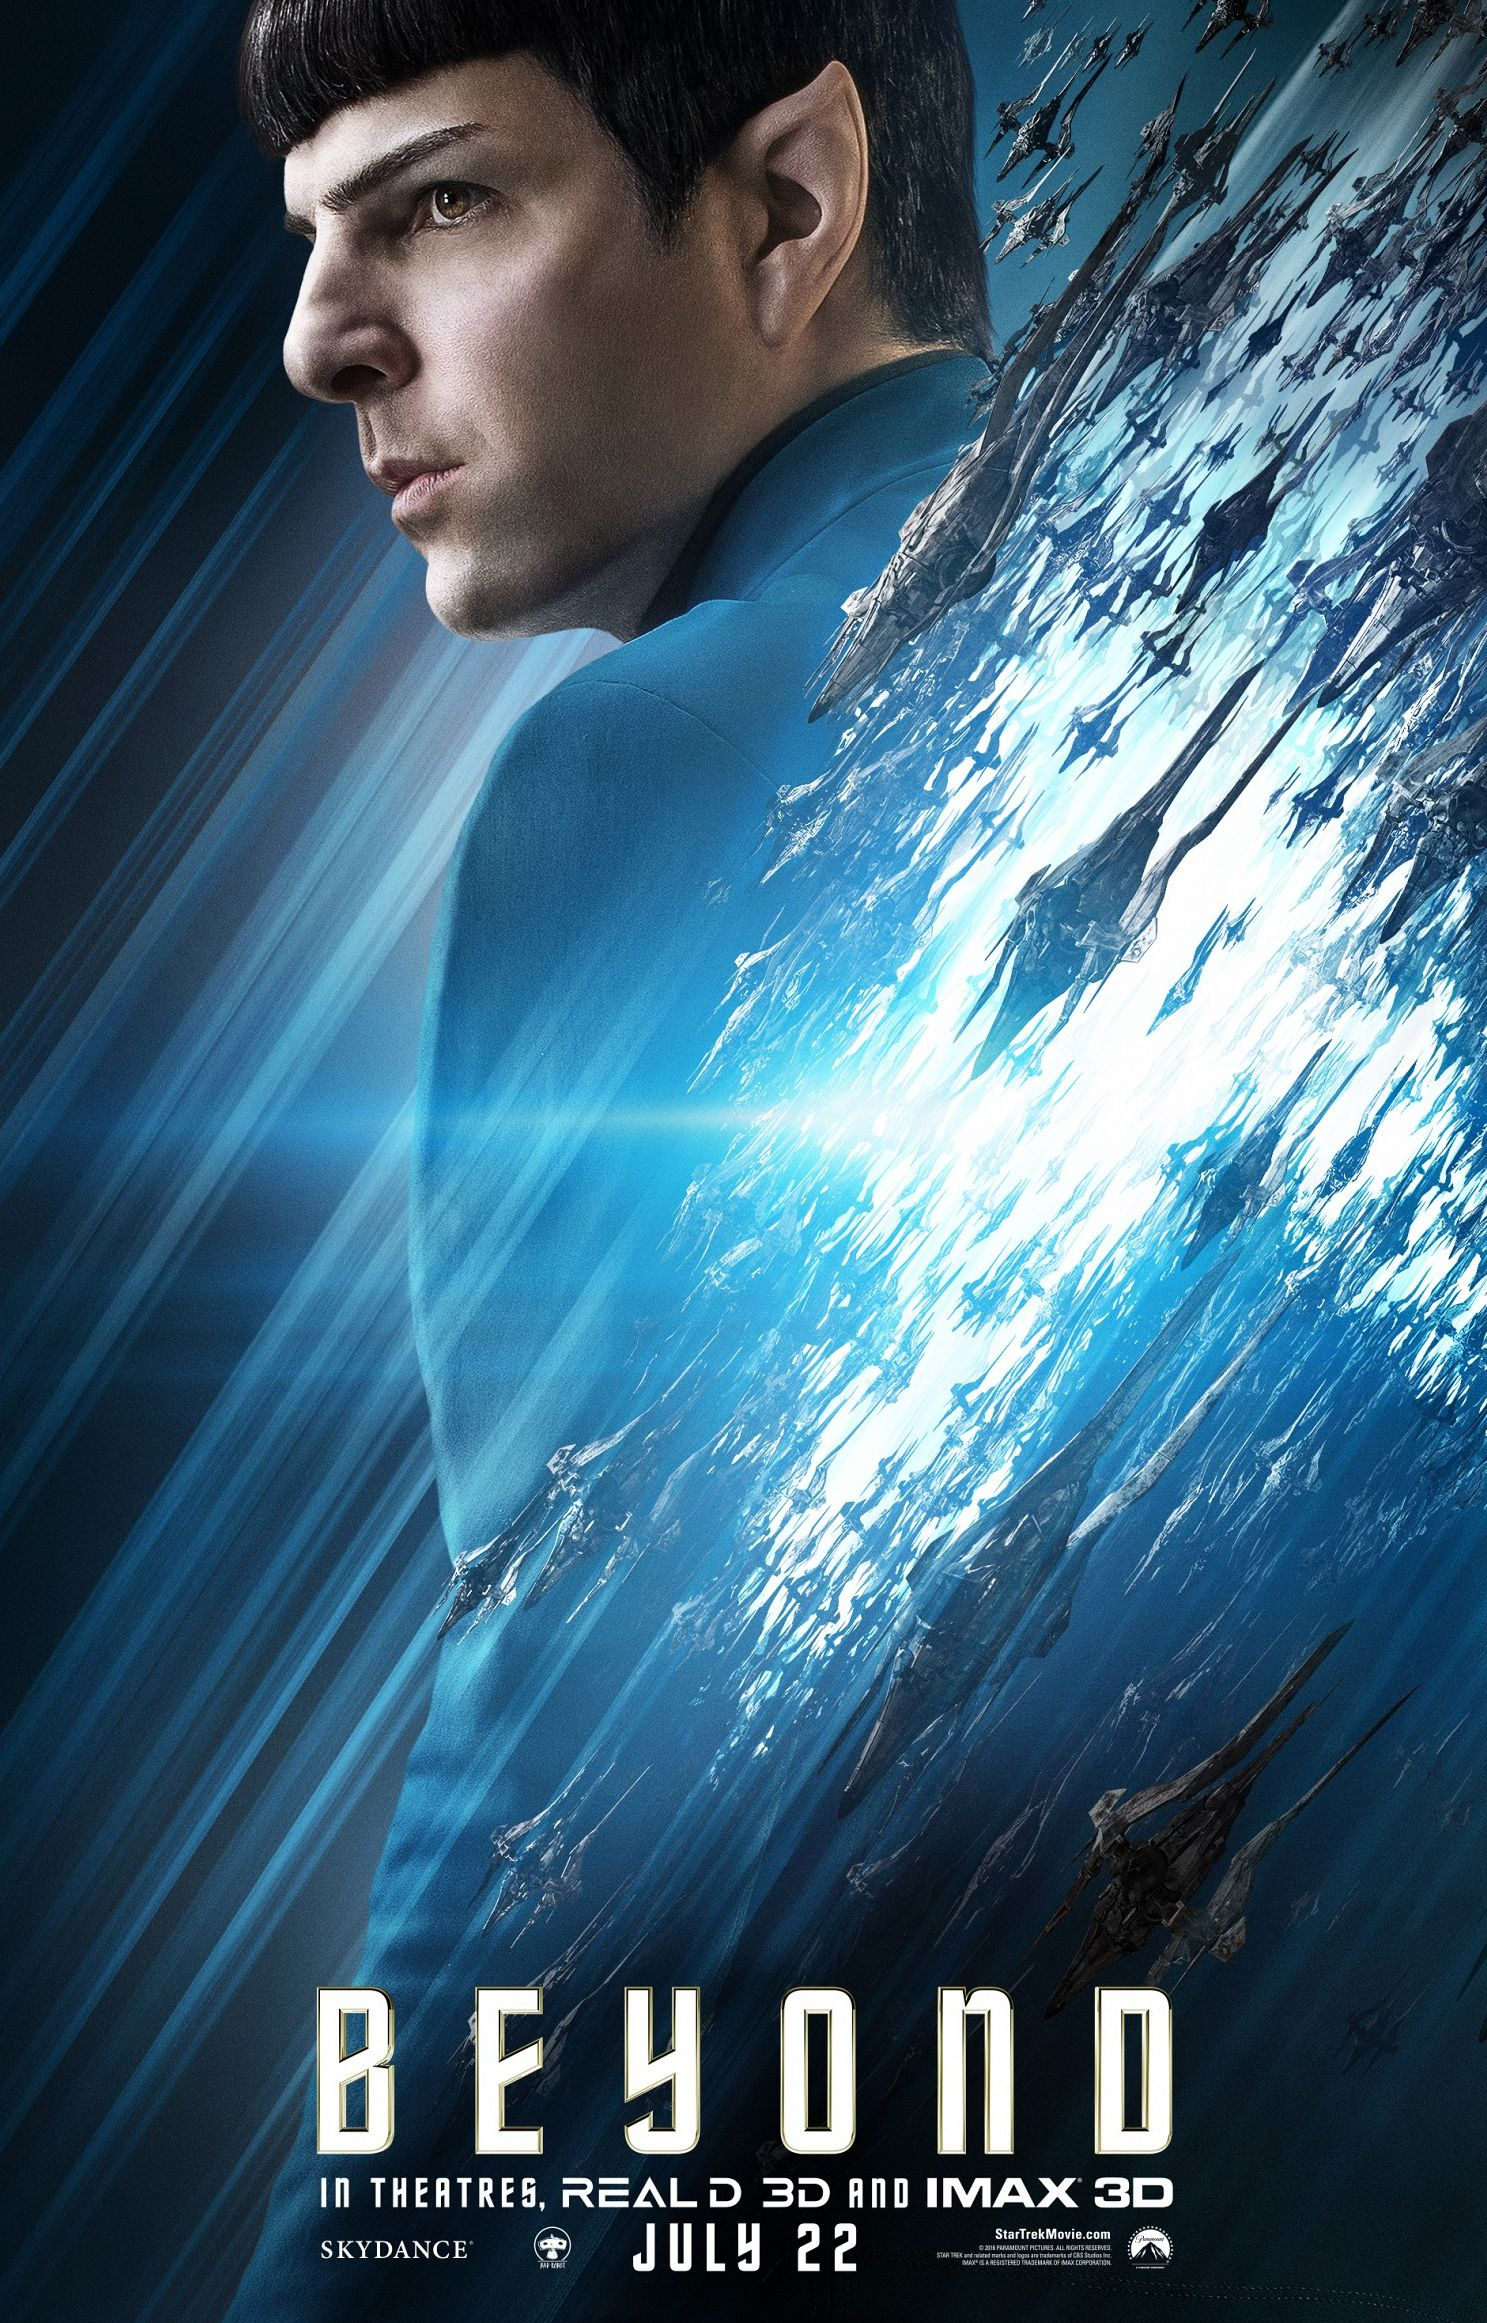 Zachary Quinto as Spock in newly released Star Trek Beyond c